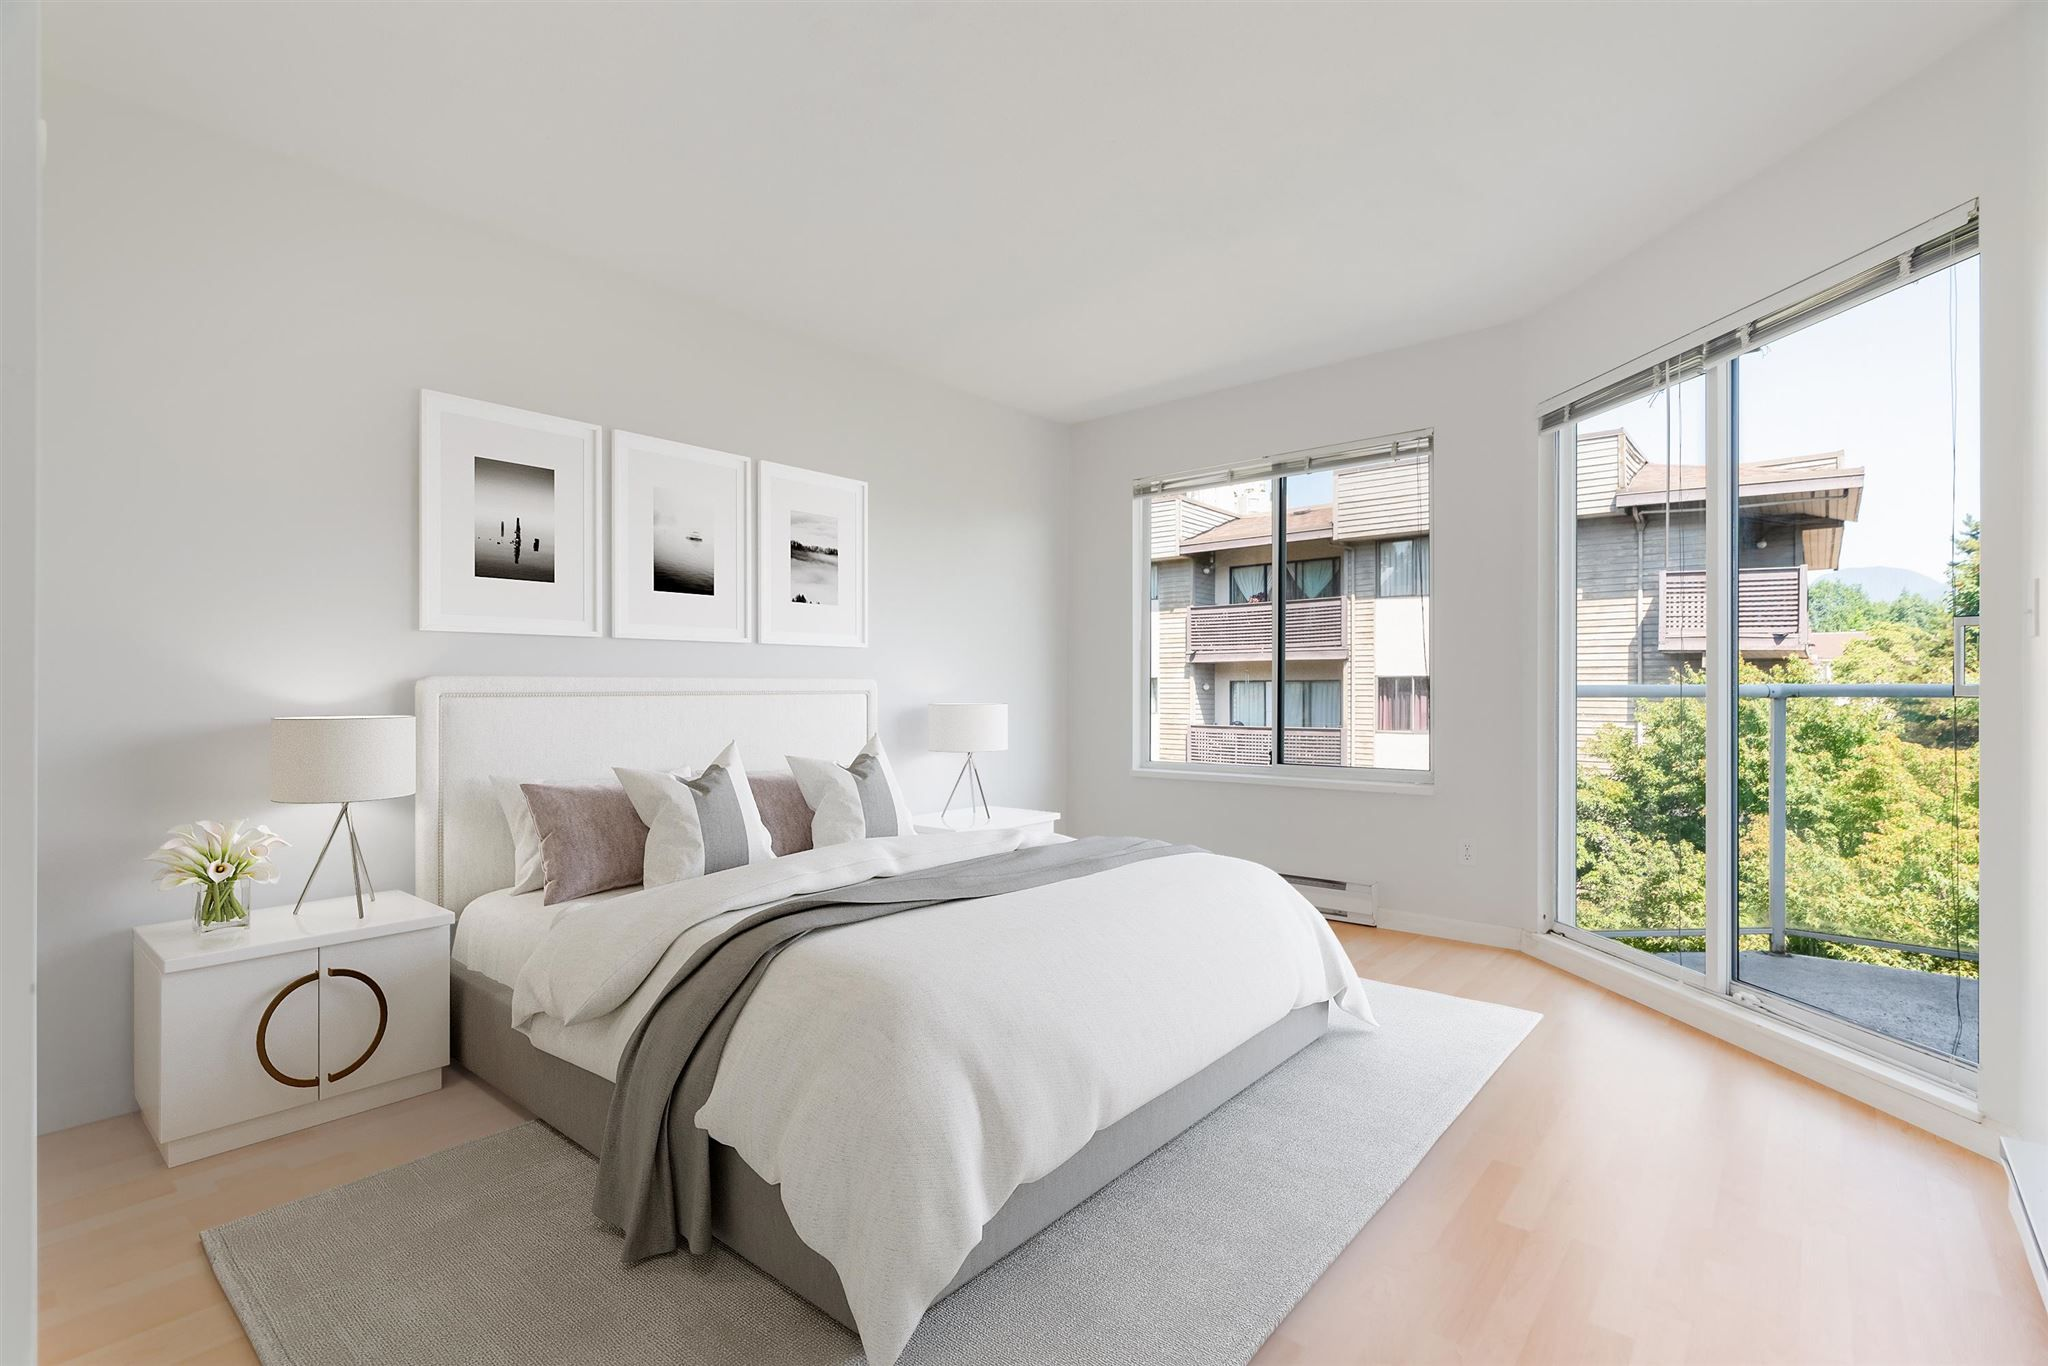 Photo 5: Photos: 303 1171 PIPELINE Road in Coquitlam: New Horizons Condo for sale : MLS®# R2607932